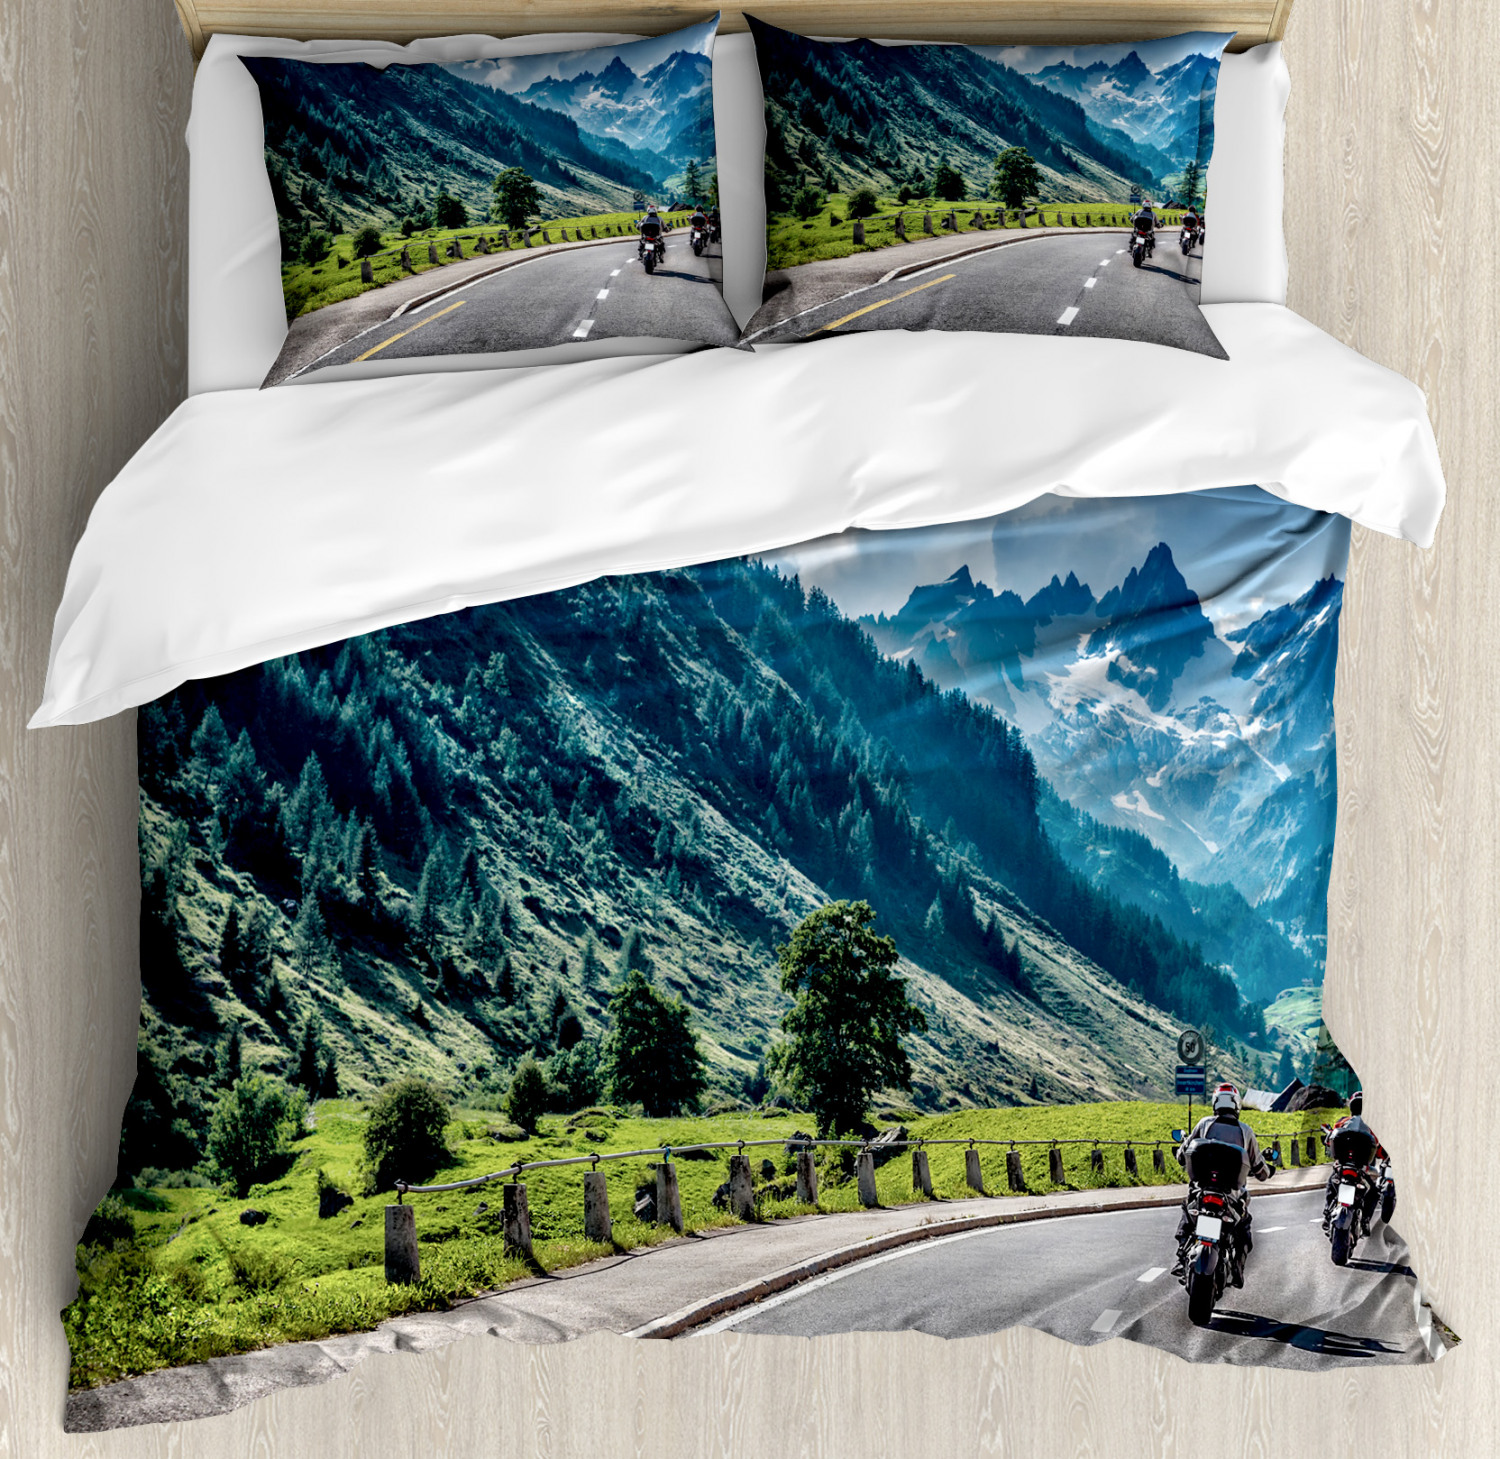 Landscape Duvet Cover Set with Pillow Shams Motorcyclist on Road Print